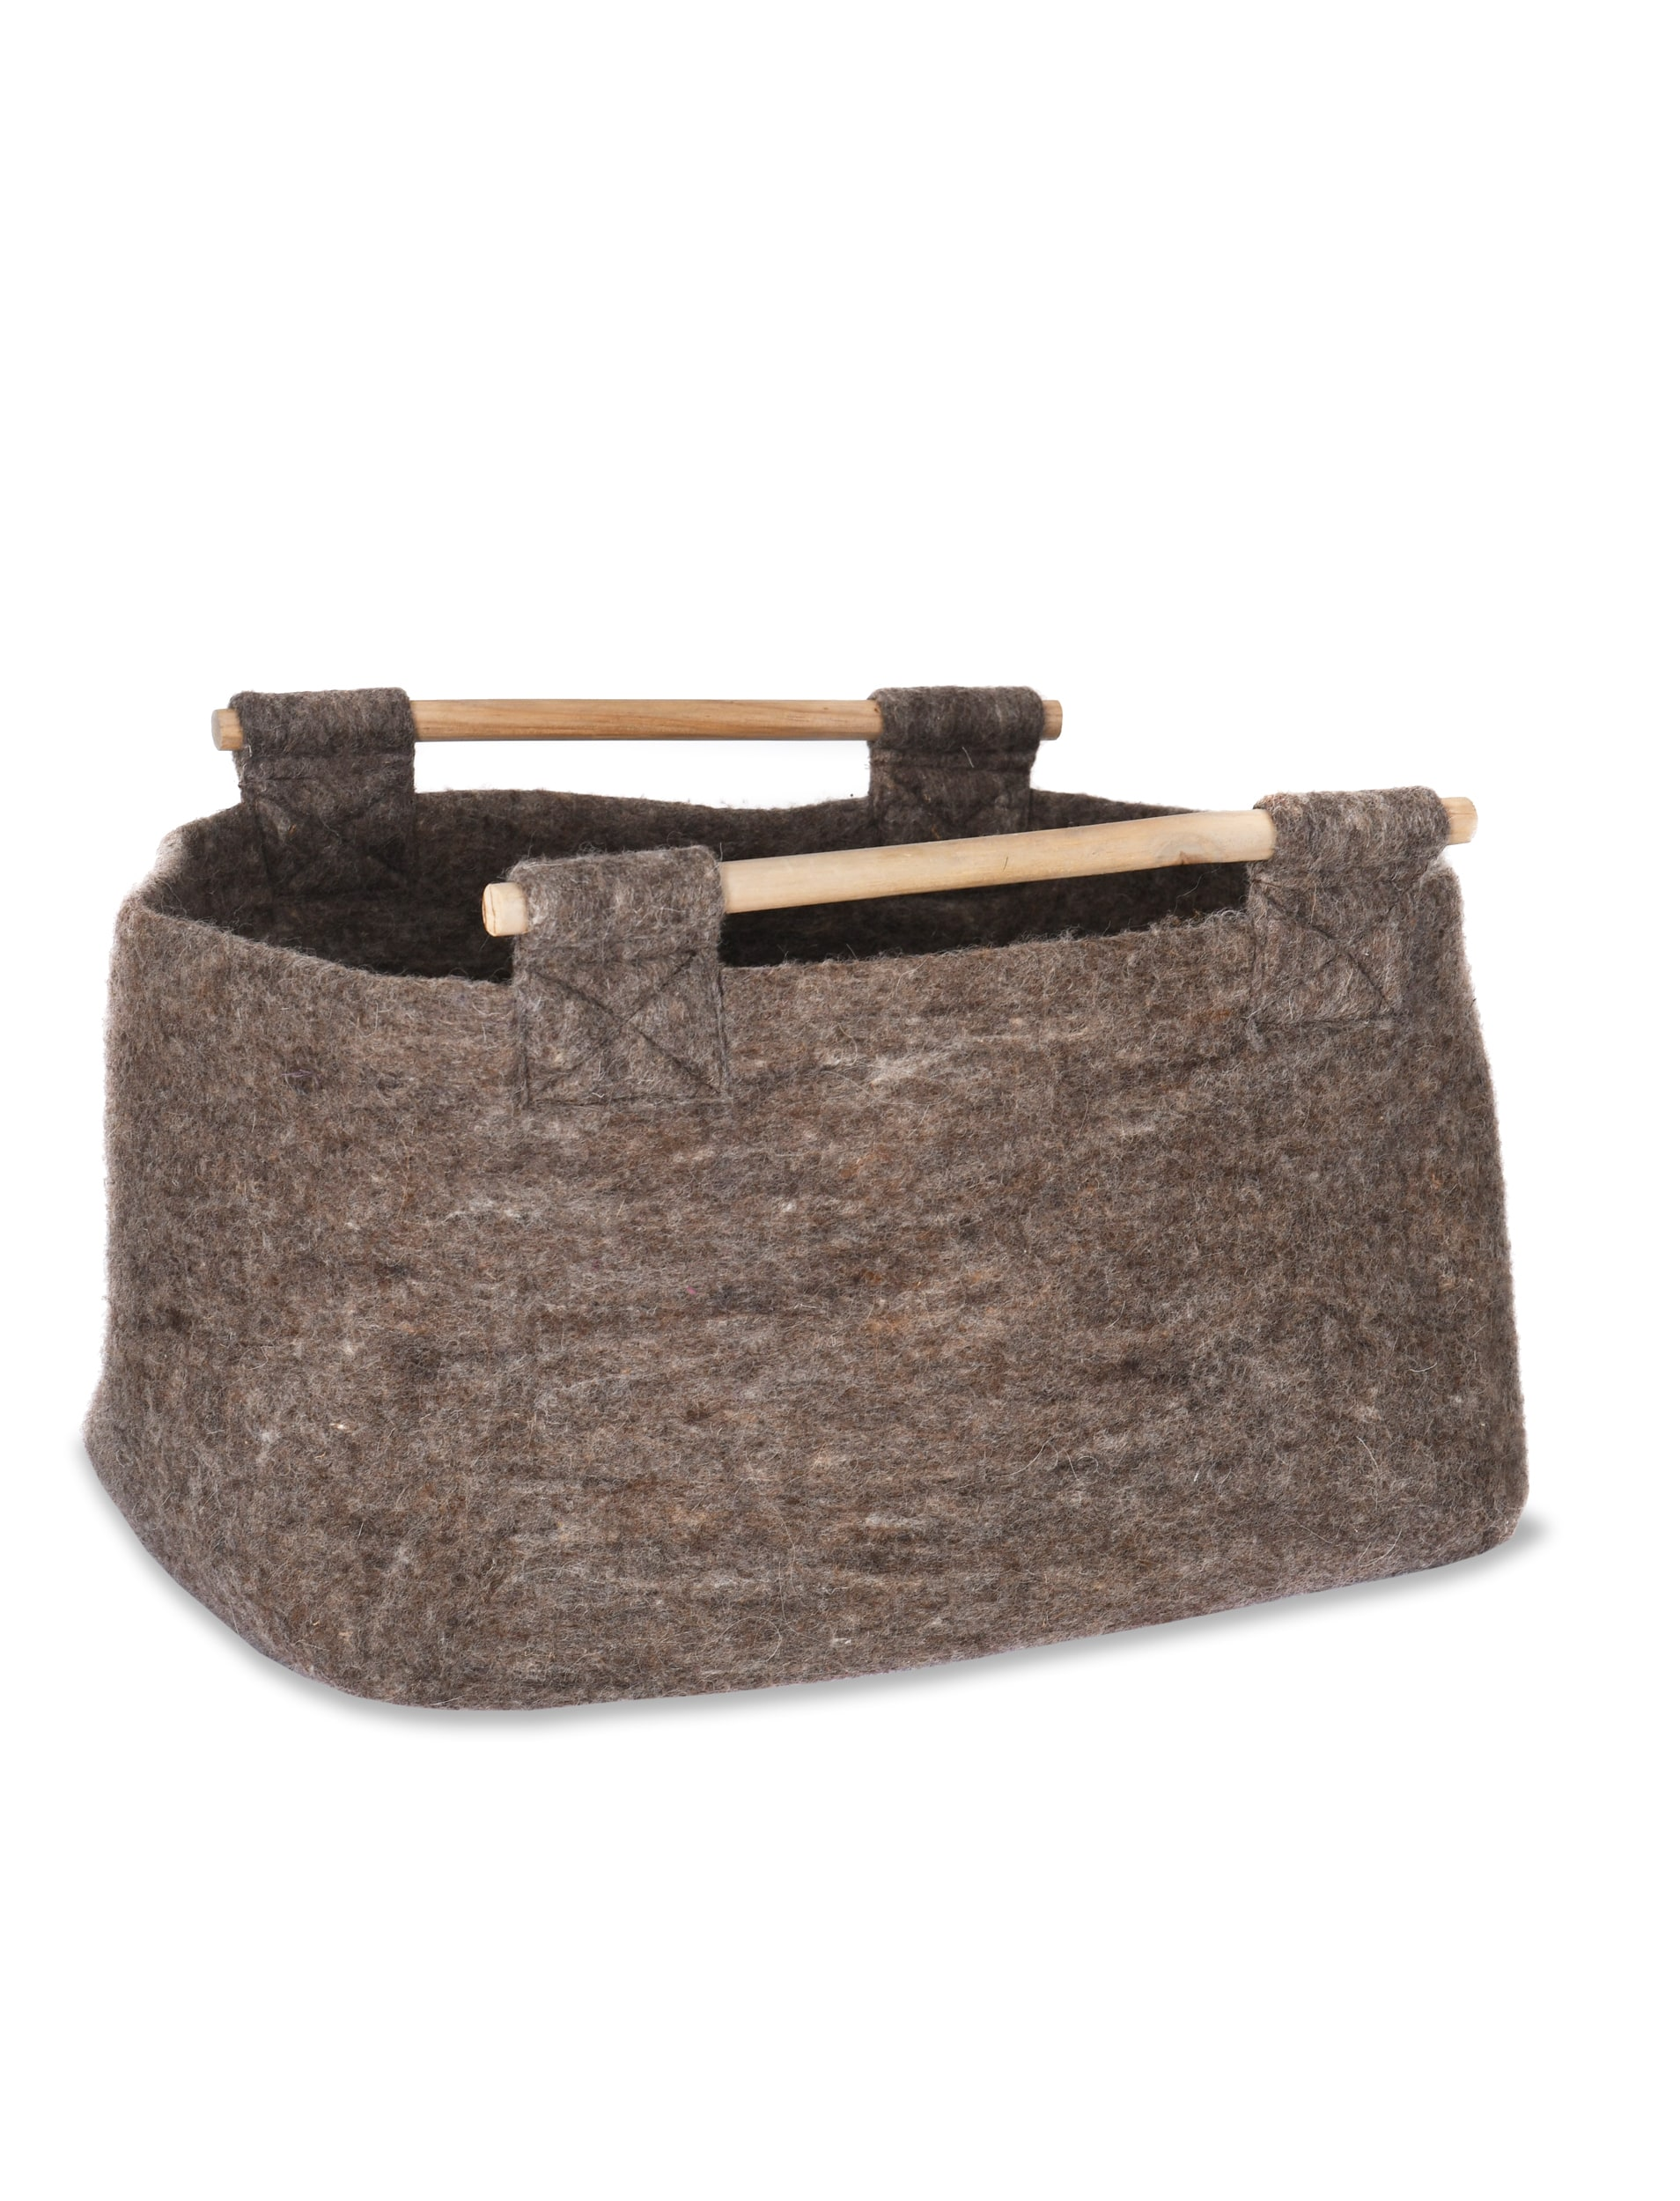 Fairtrade Felt Southwold Basket with Wooden Handle  | Garden Trading